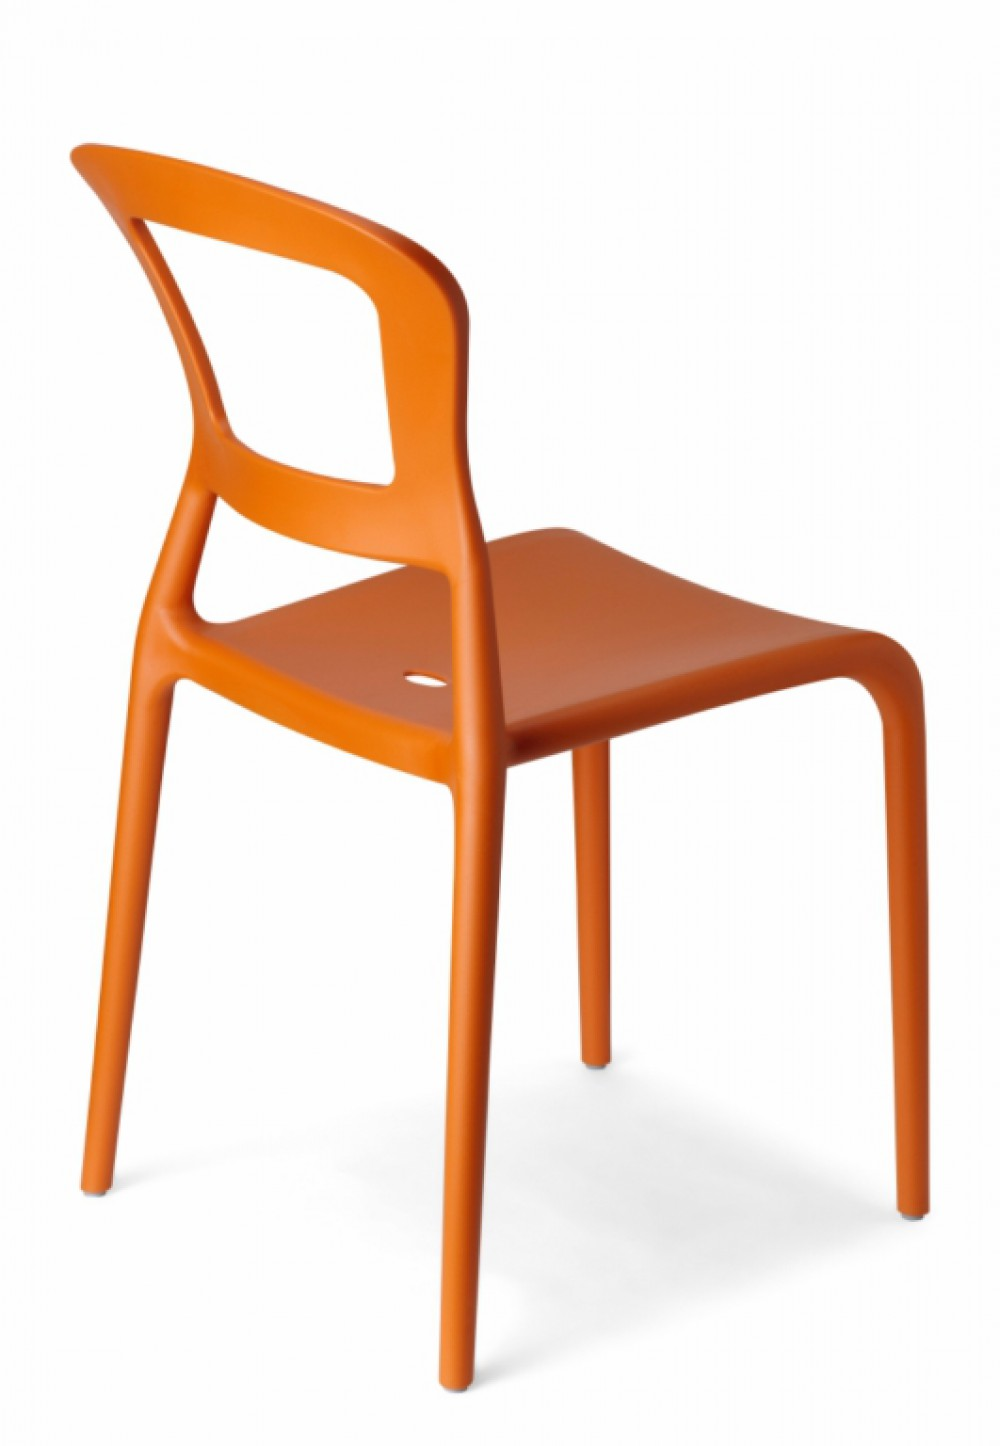 Design stuhl kunststoff orange modern outdoor geeignet for Design stuhl orange